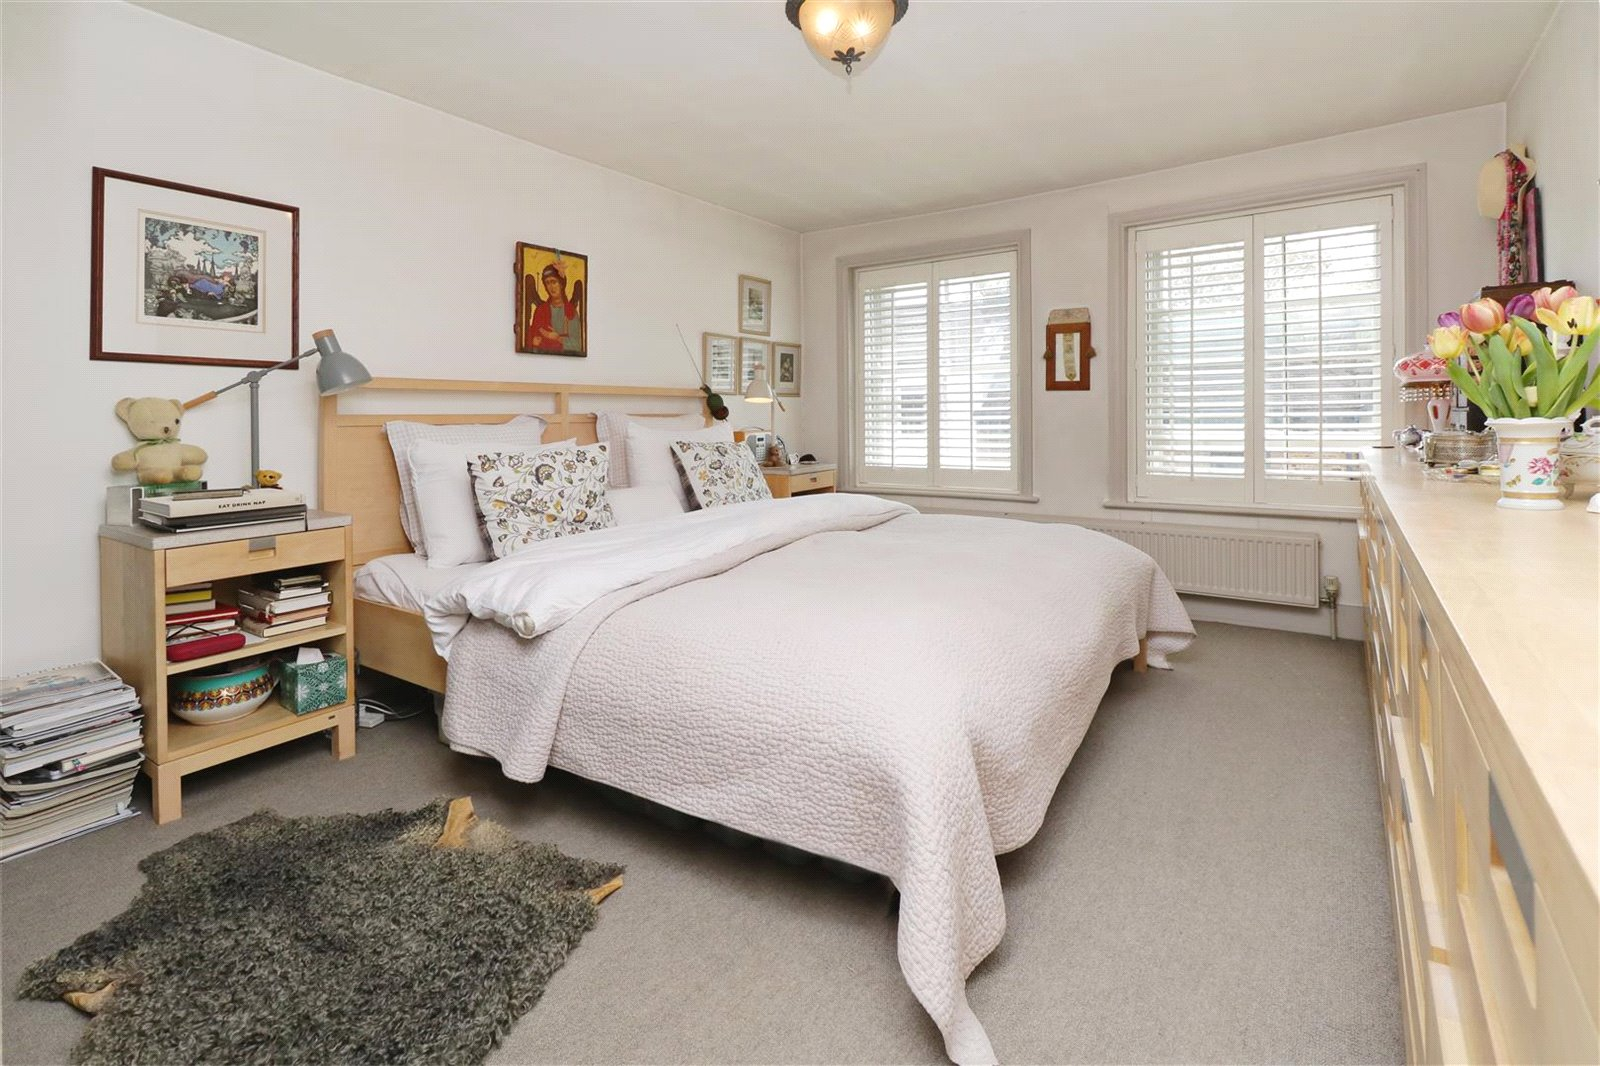 House for sale in Highgate, N6 5HX  - Property Image 7